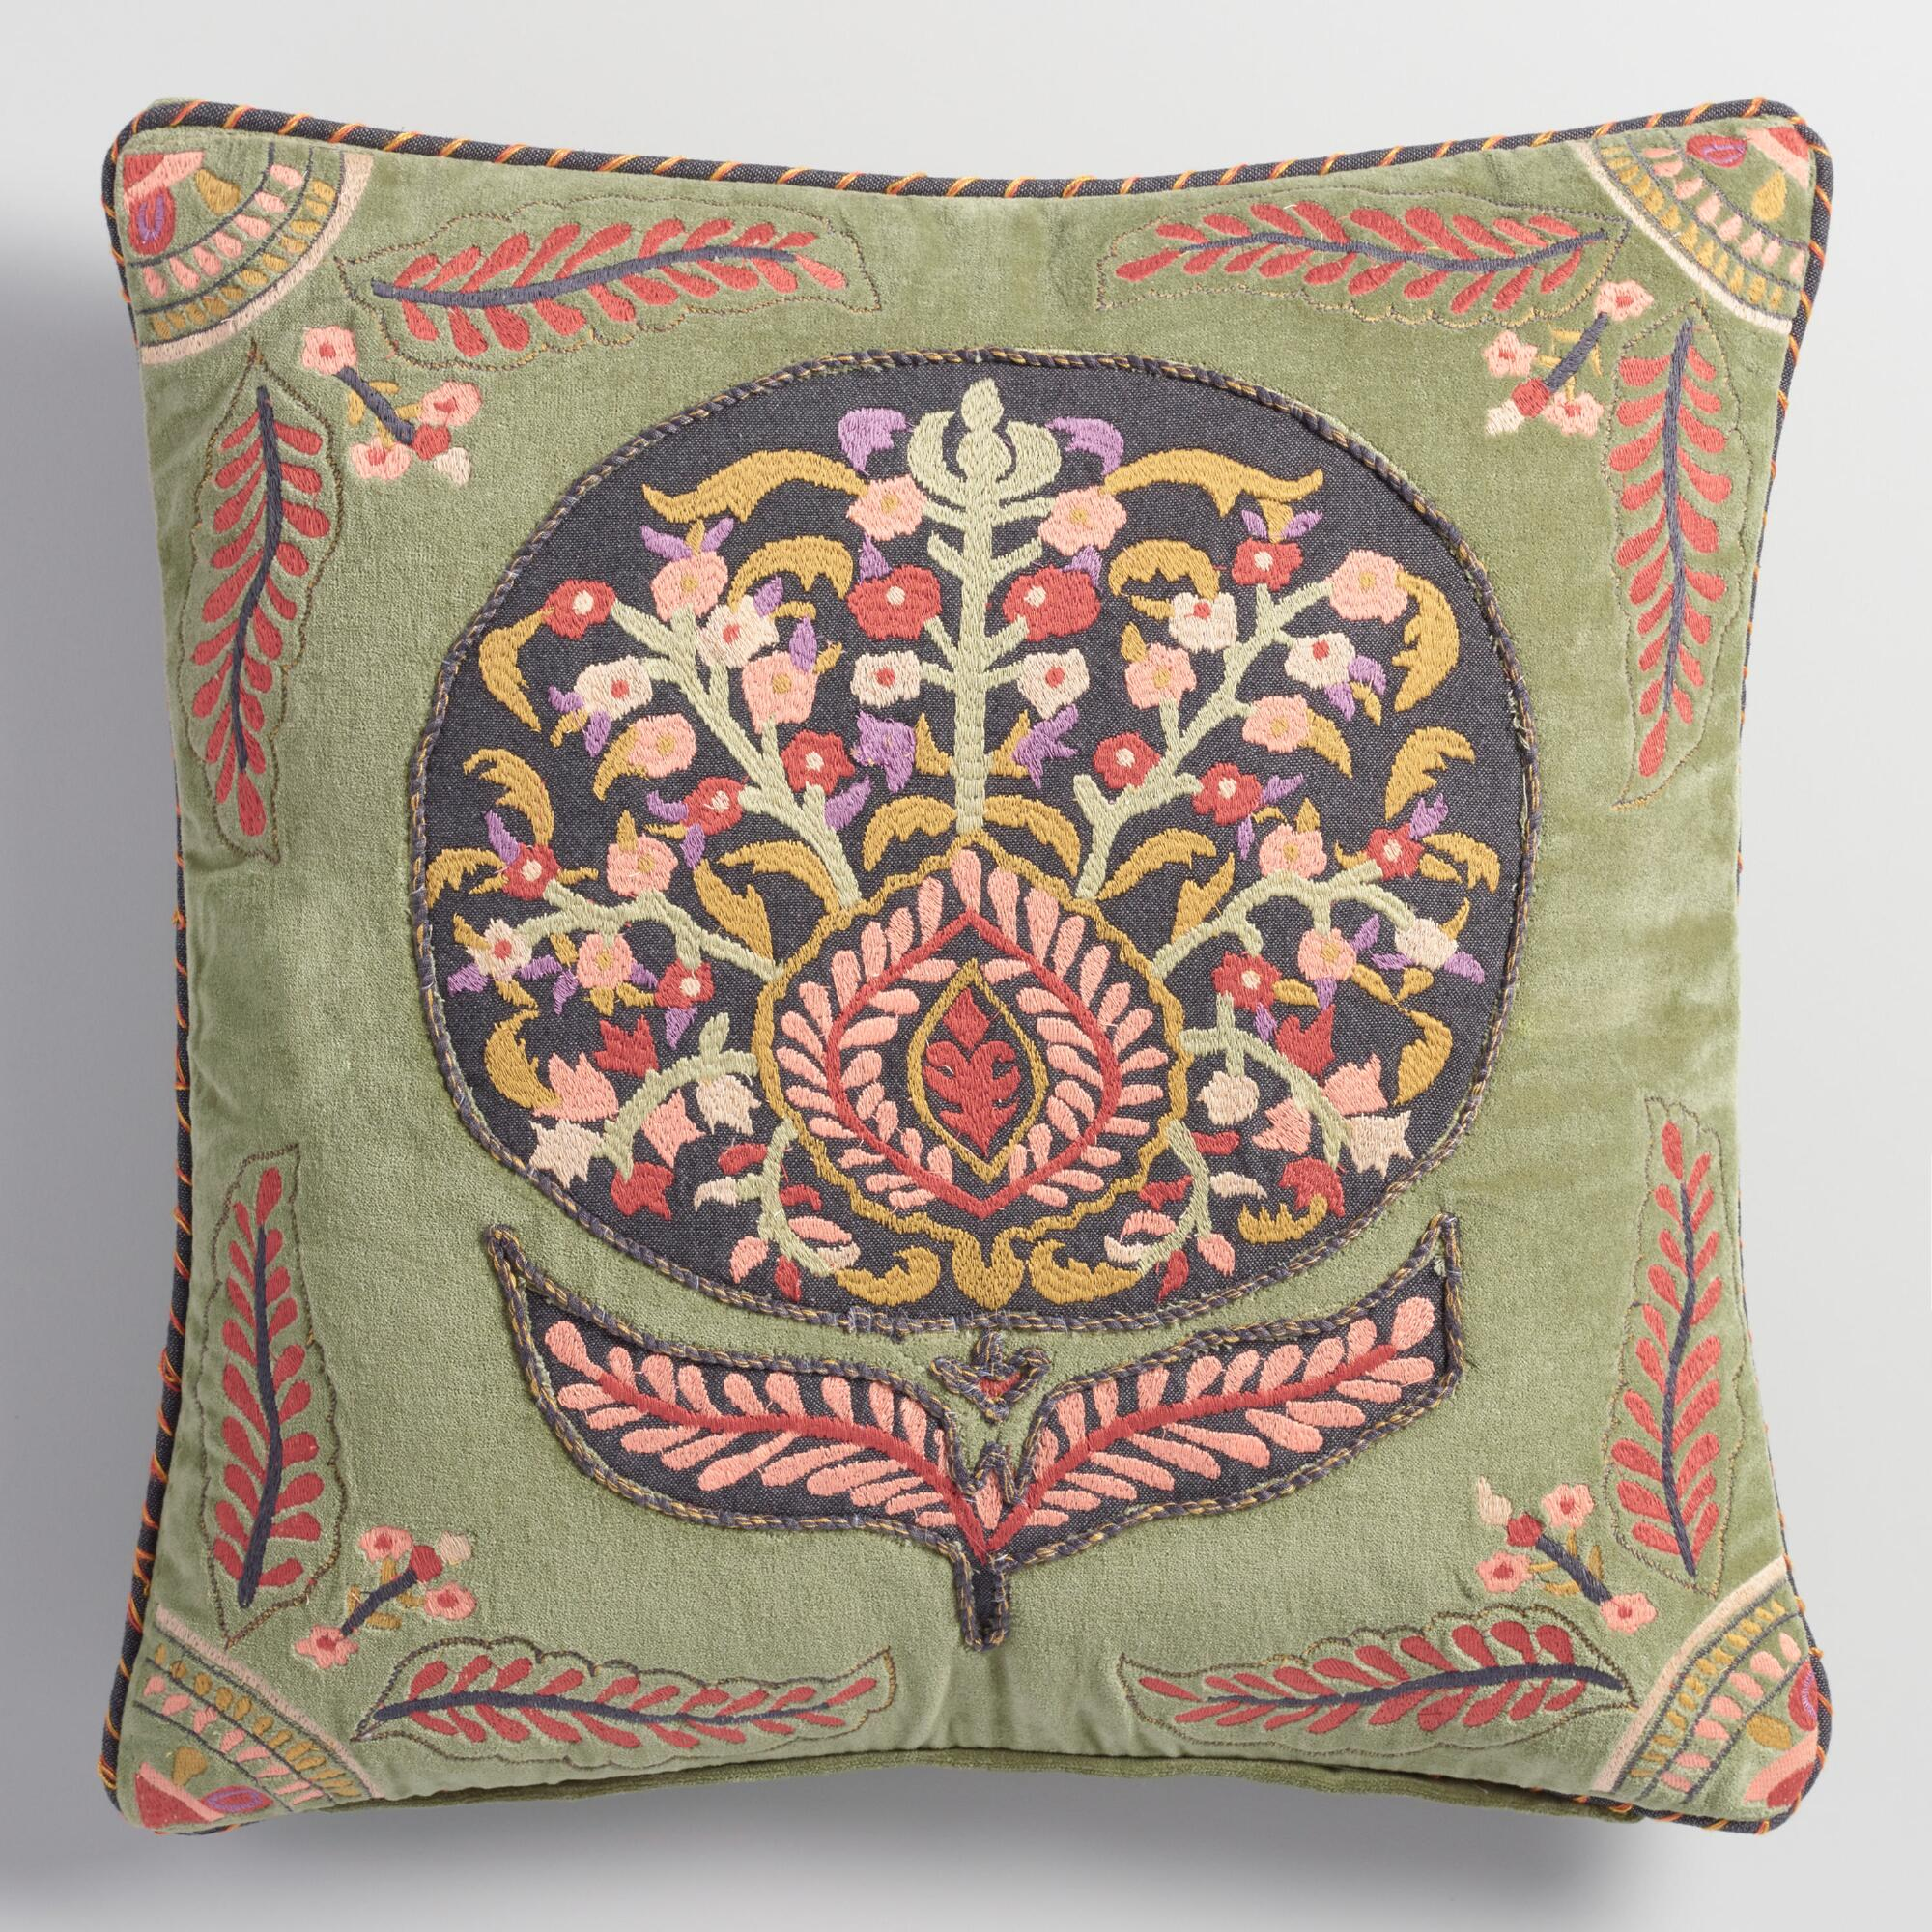 Decorative Pillows Flowers : Embroidered Flower Velvet Throw Pillow World Market